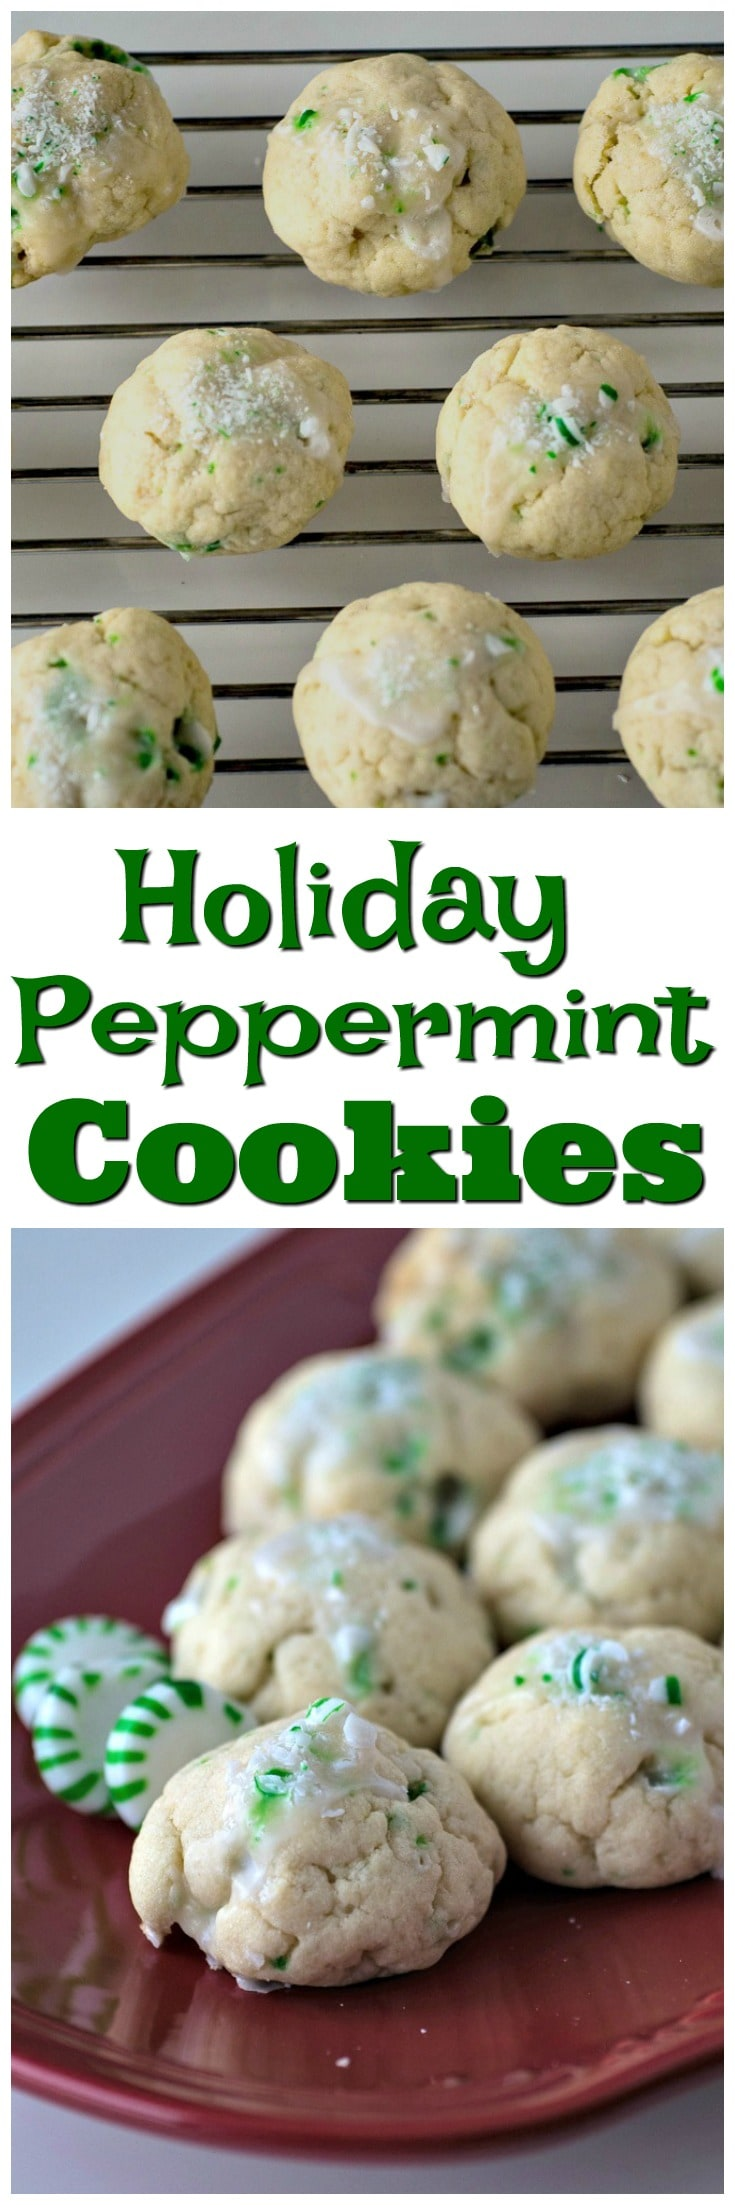 Peppermint Cookies | Easy to Make | Christmas Cookies | Green Peppermint Cookies | Holiday Cookies | Candy Cane | Recipe | Iced Peppermint Cookies | Cookie Exchange